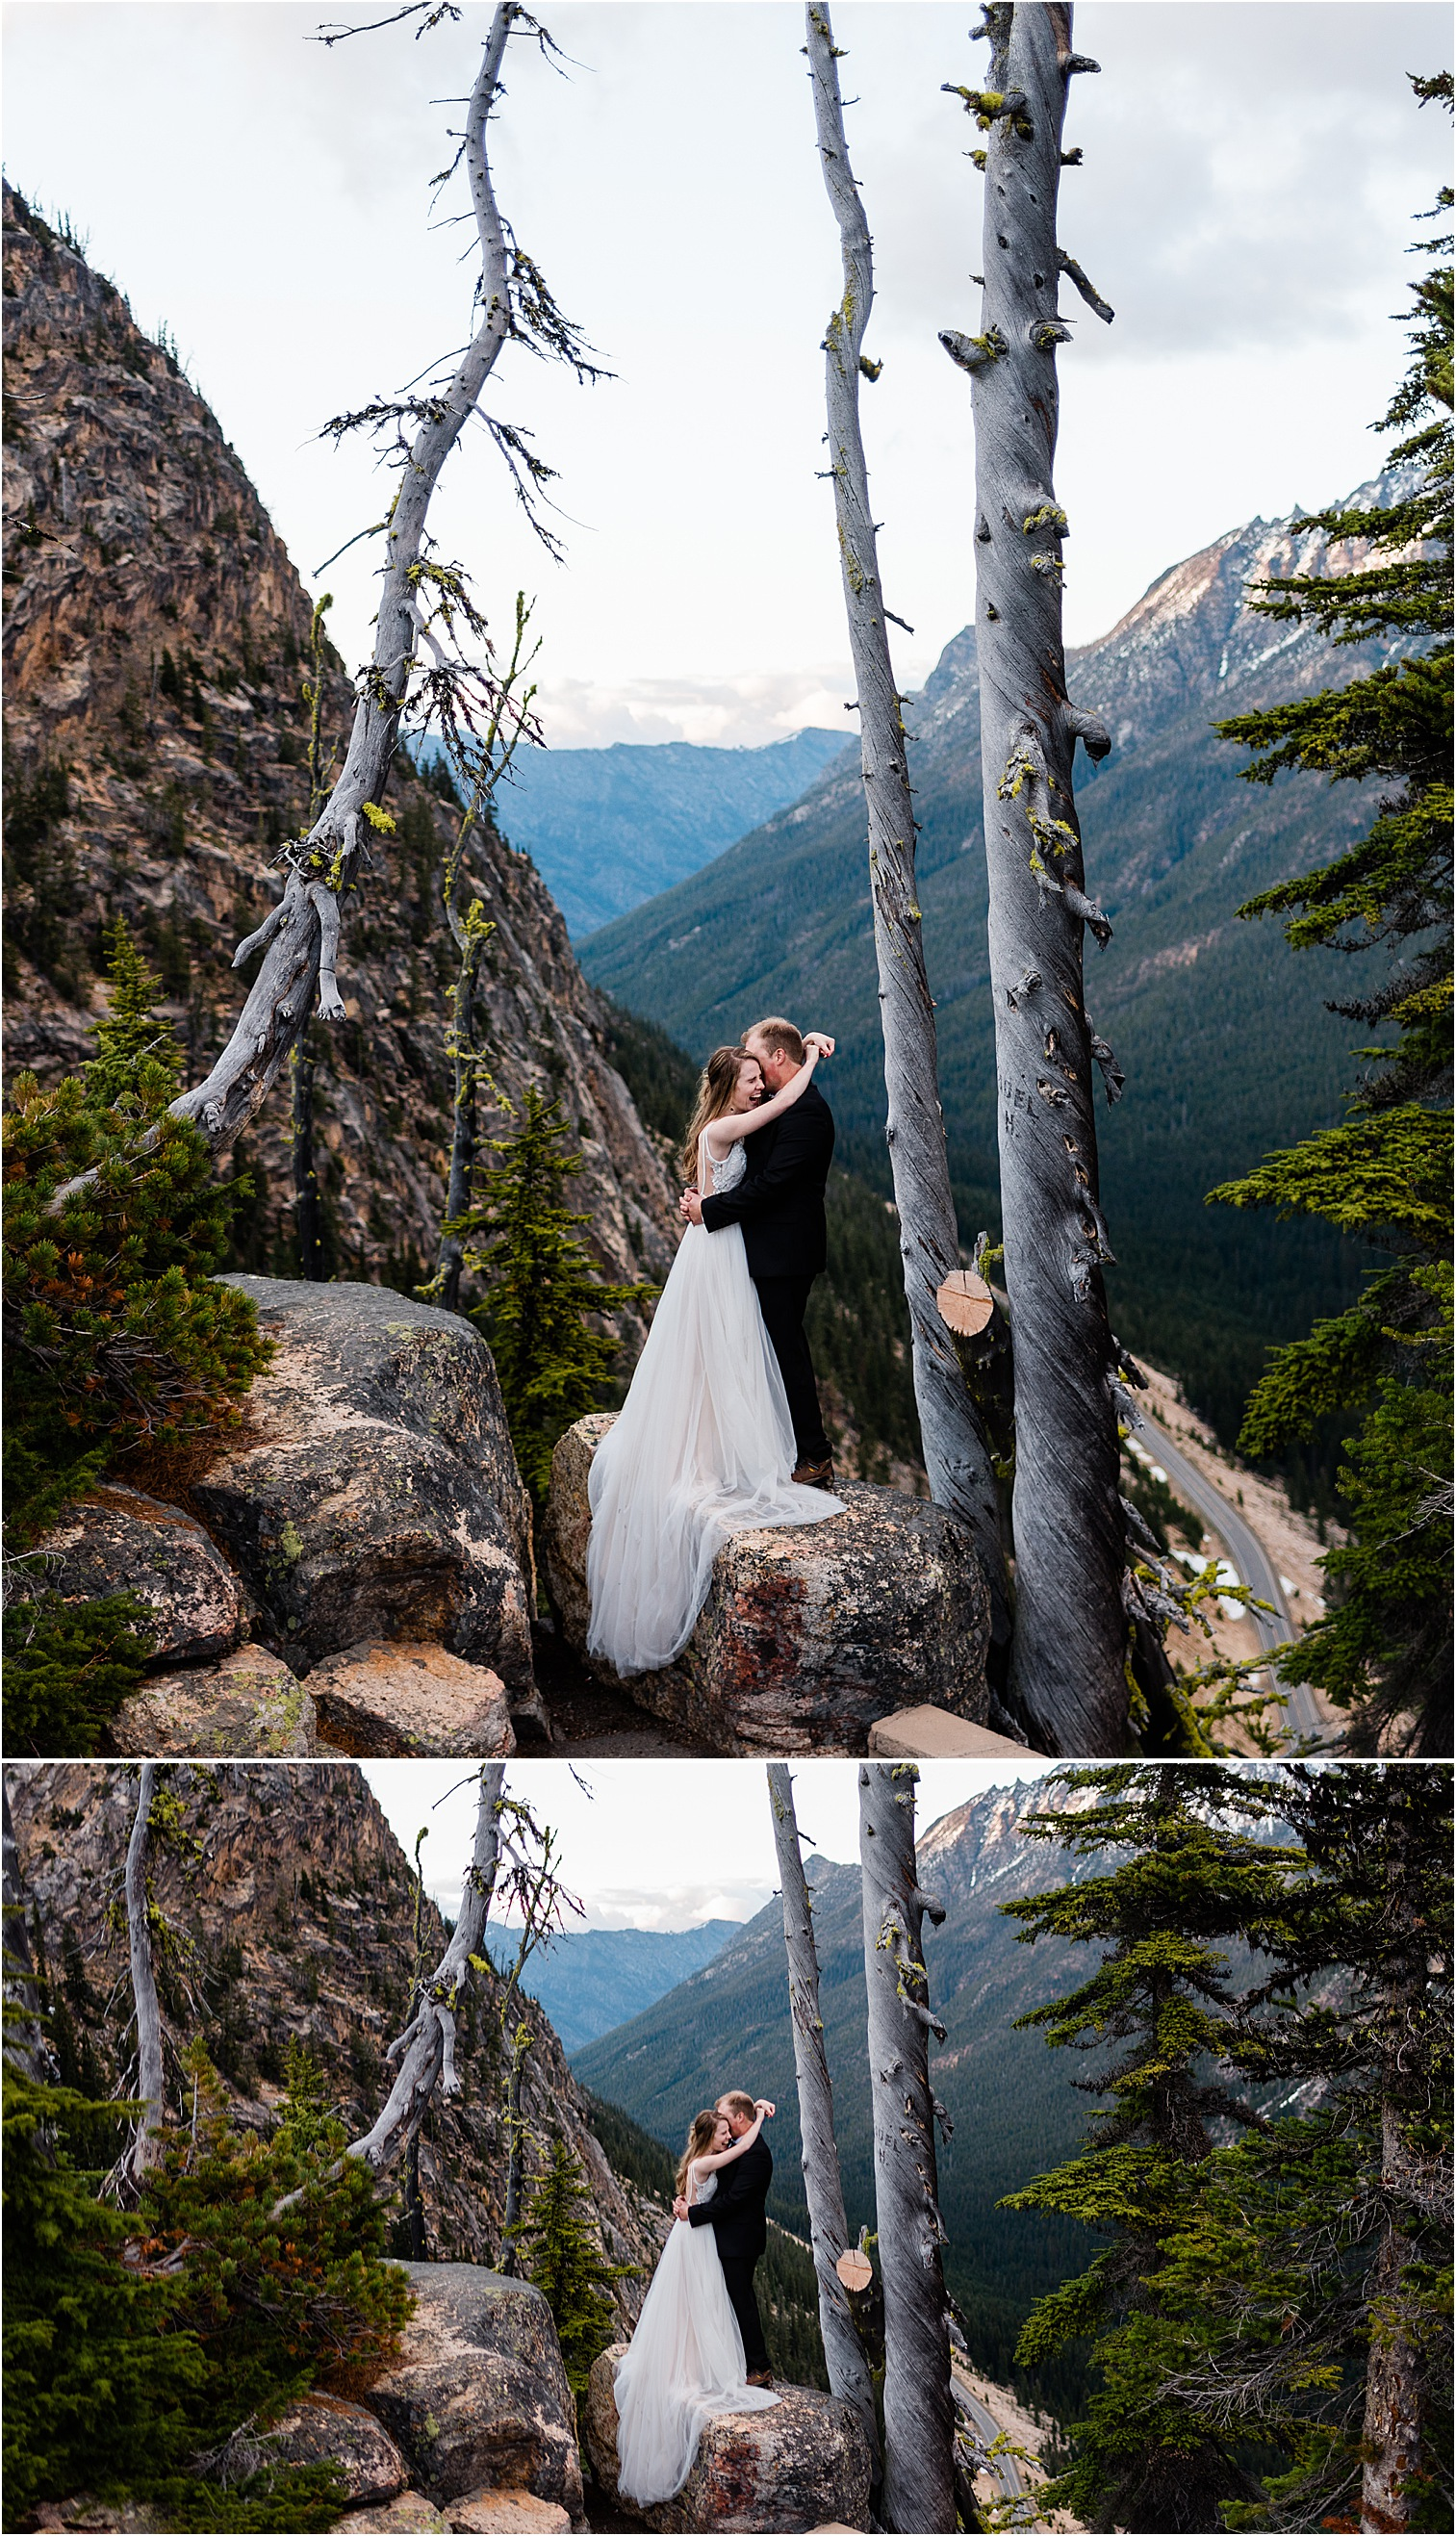 Collage of Hope & Steven enjoying Washington Pass overlook during their Adventure Wedding in North Cascades National Park. Image by Forthright Photo, Seattle Wedding & Elopement Photographers